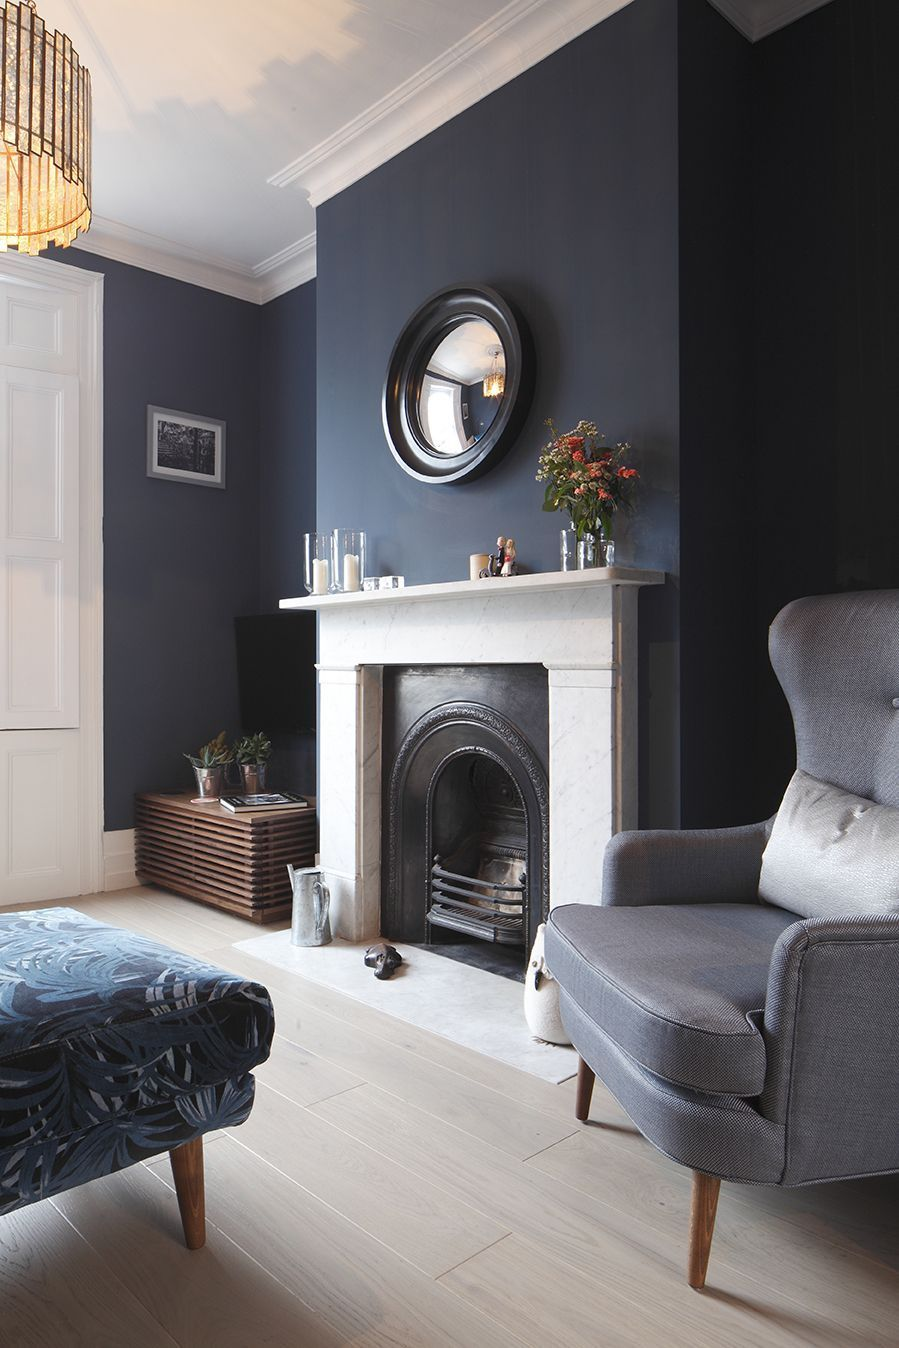 Welcome To Our Design Blog With Interior Design Tips And Advice For Your Home Paintcolor Colors Navy Living Rooms Living Room Color Schemes Living Room Color #new #living #room #colors